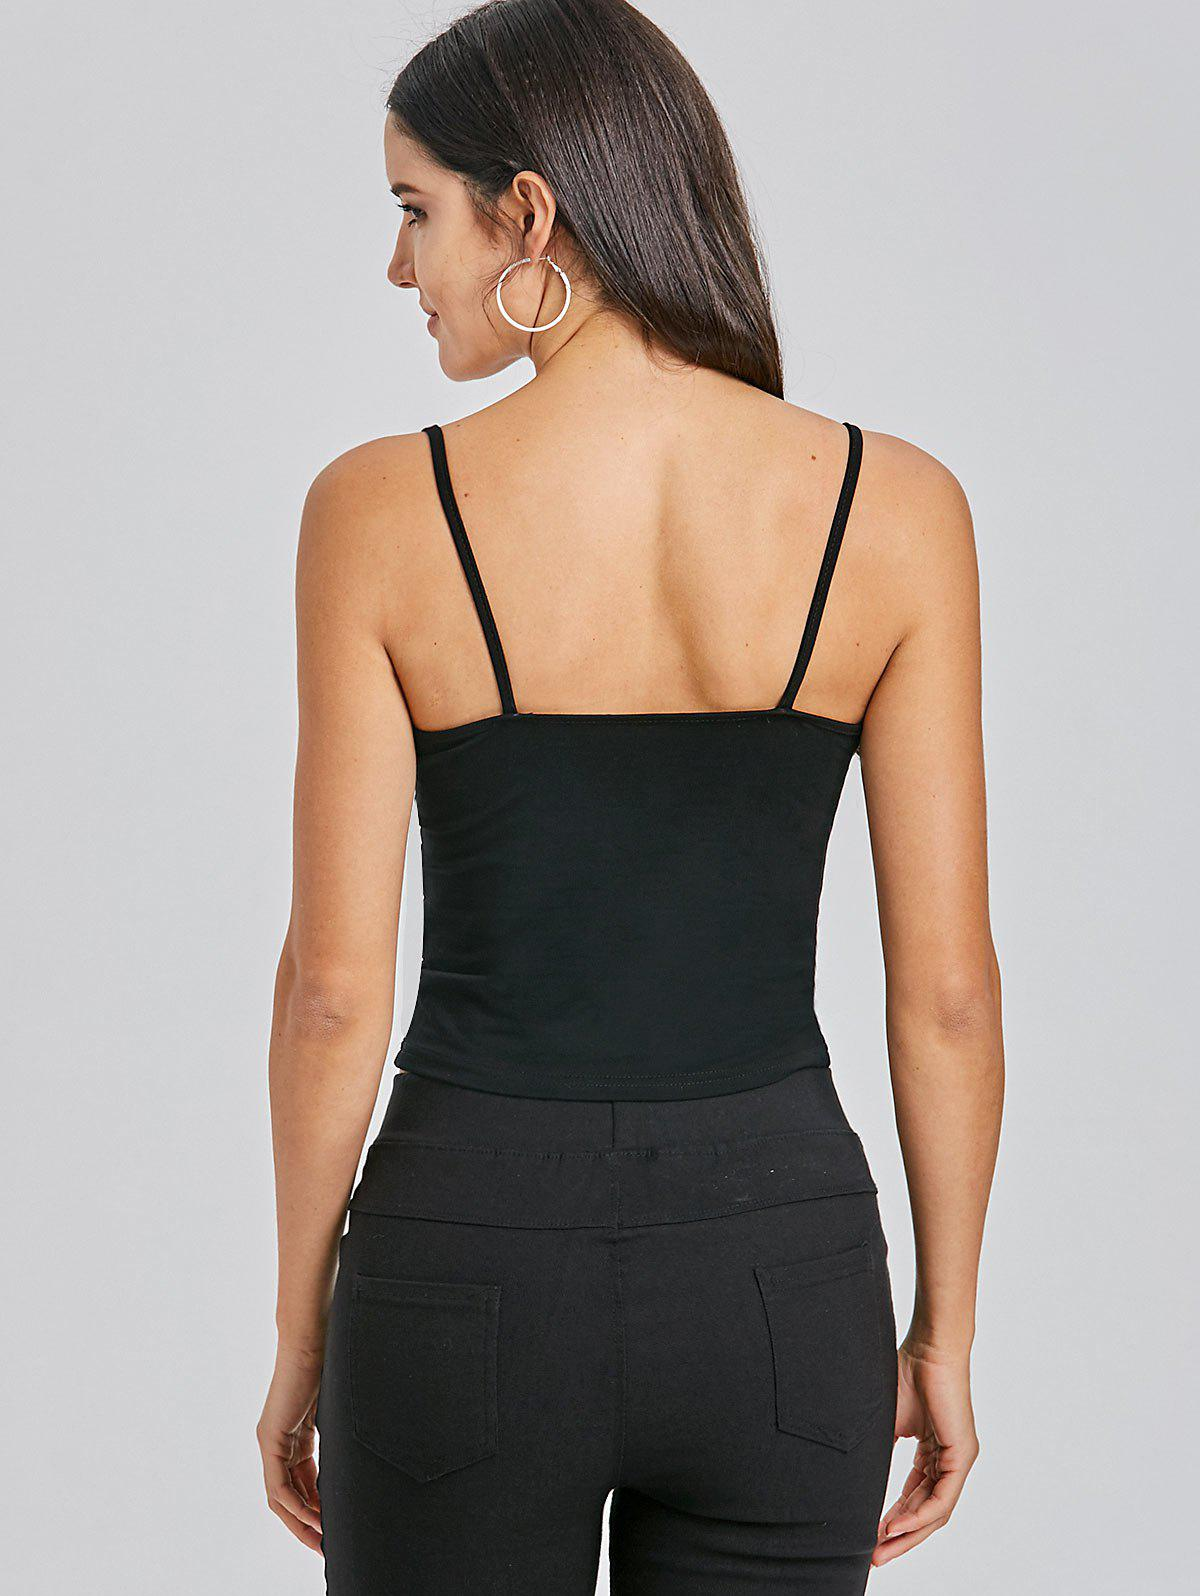 Cami Cropped Snap Button Tank Top - BLACK S